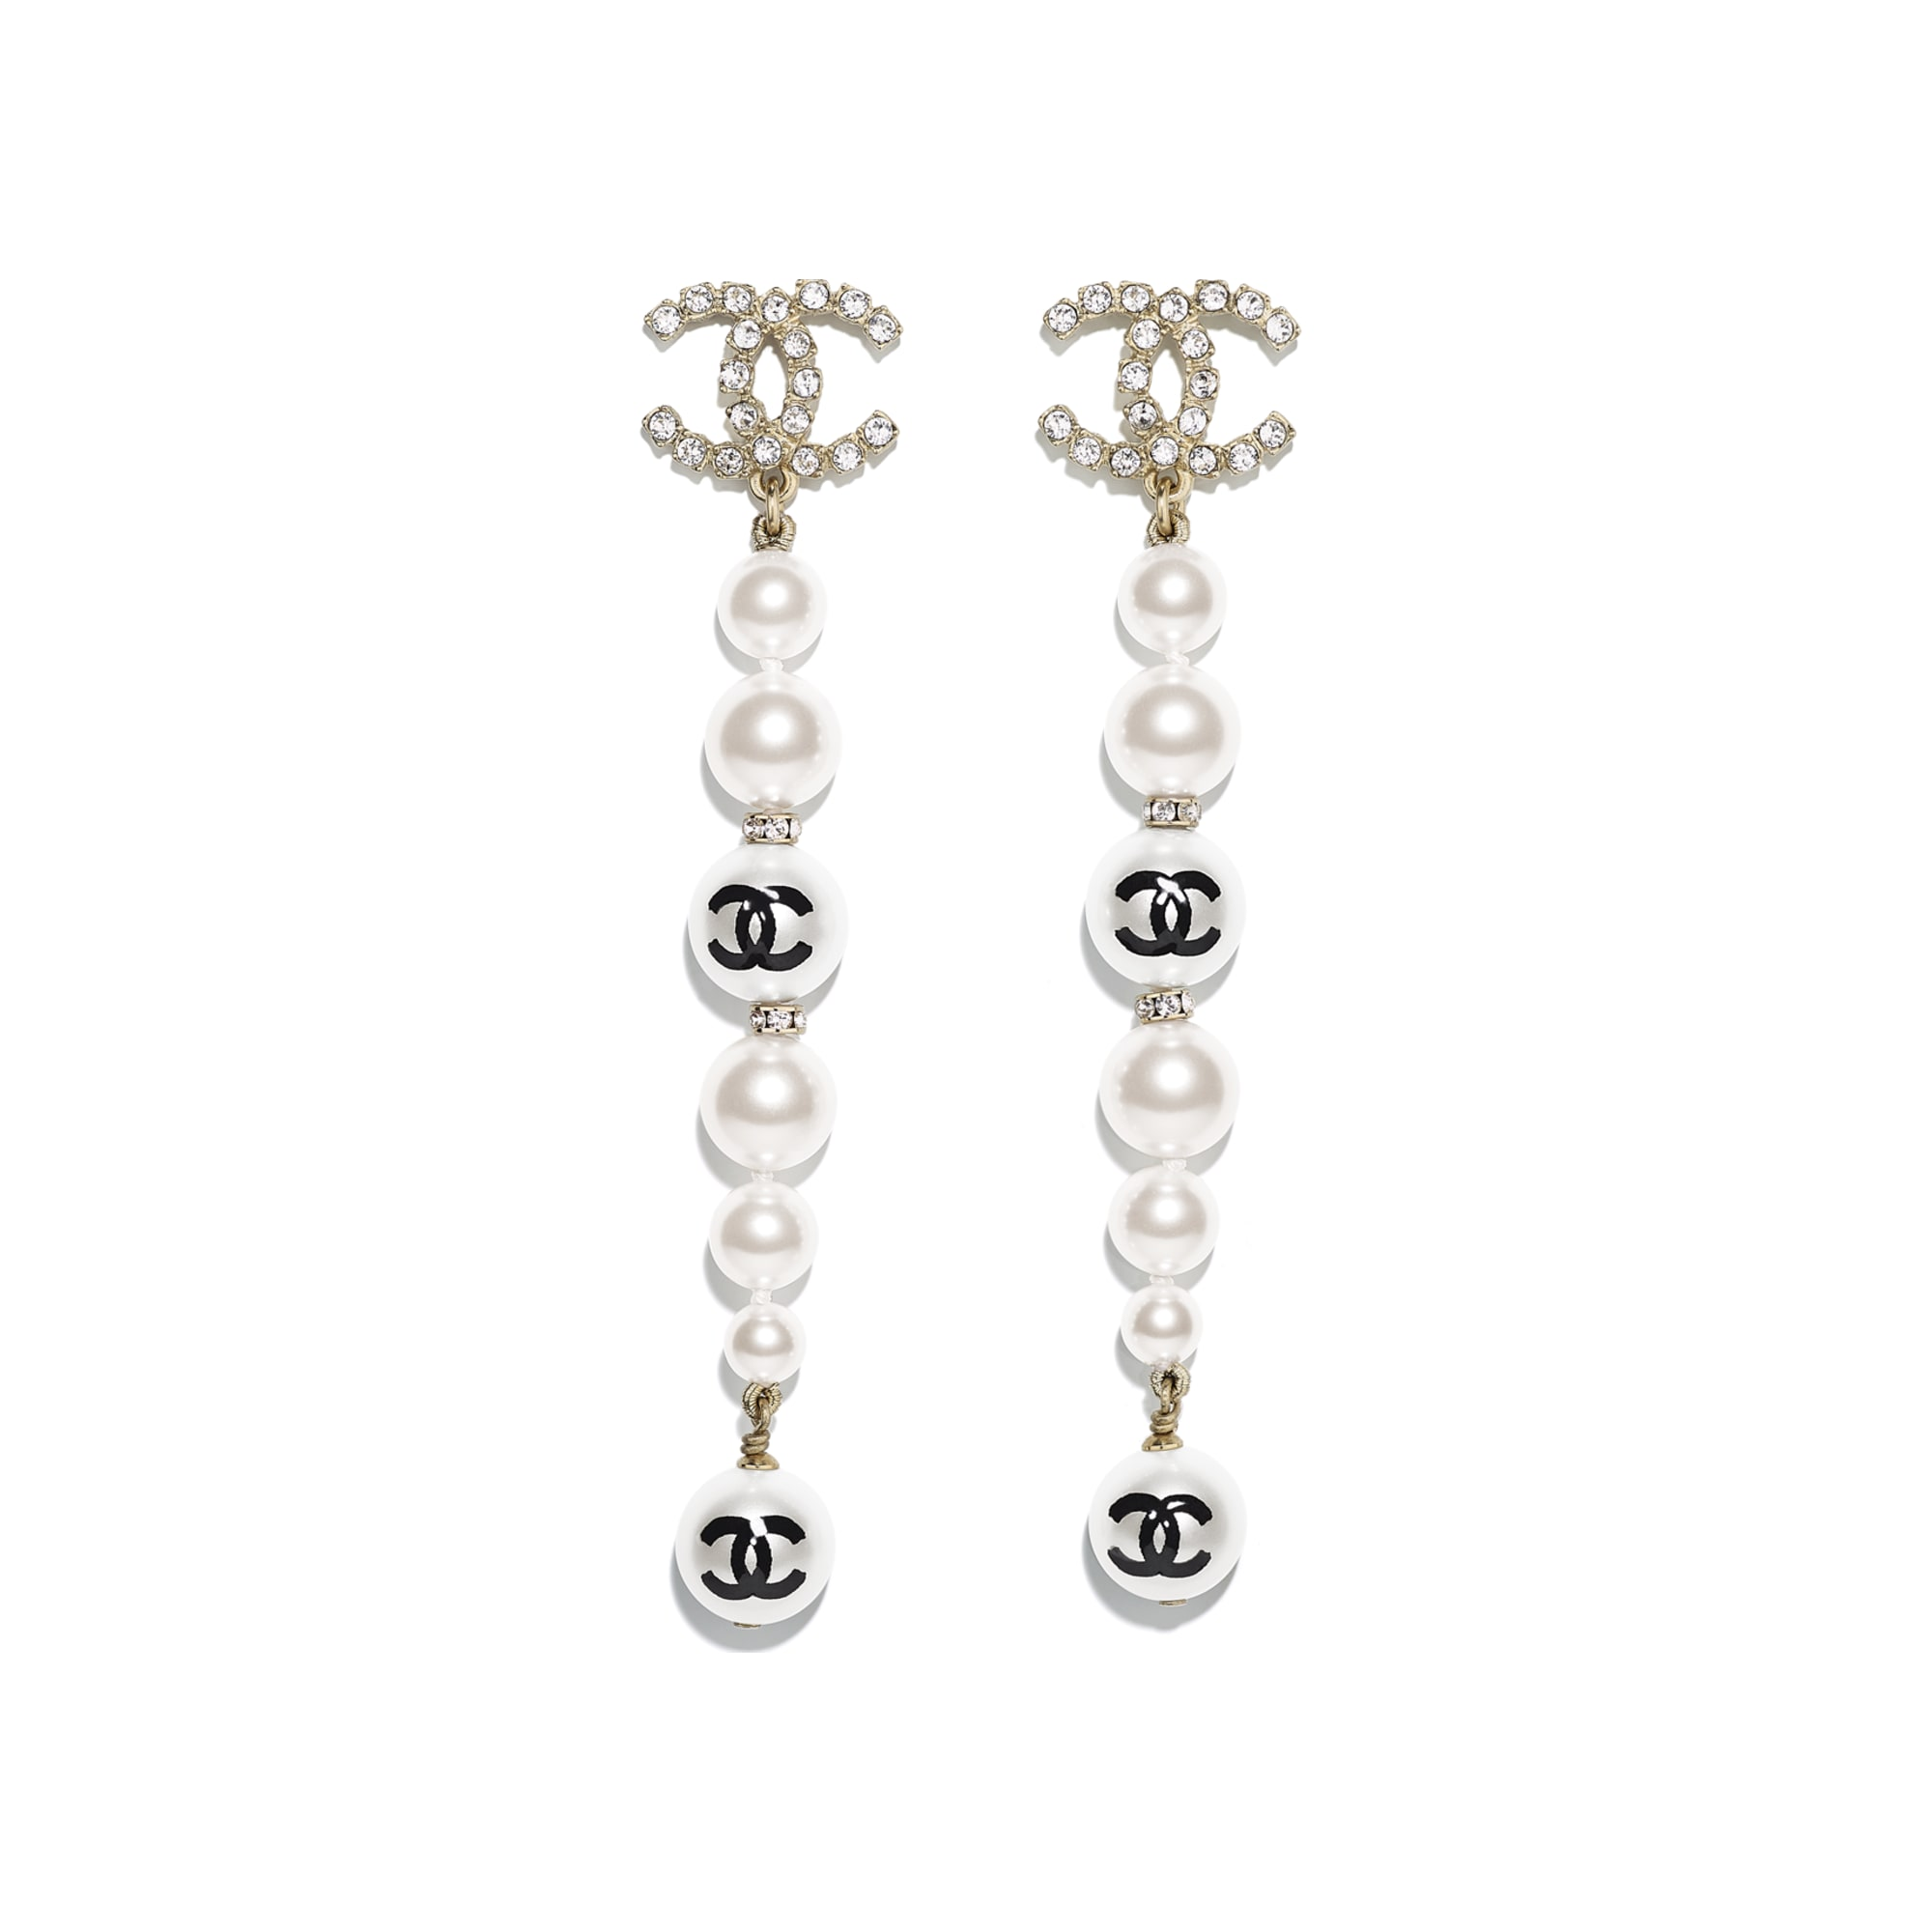 Earrings - Gold, Pearly White, Black & Crystal - Metal, Glass Pearls, Imitation Pearls & Diamanté - CHANEL - Default view - see standard sized version